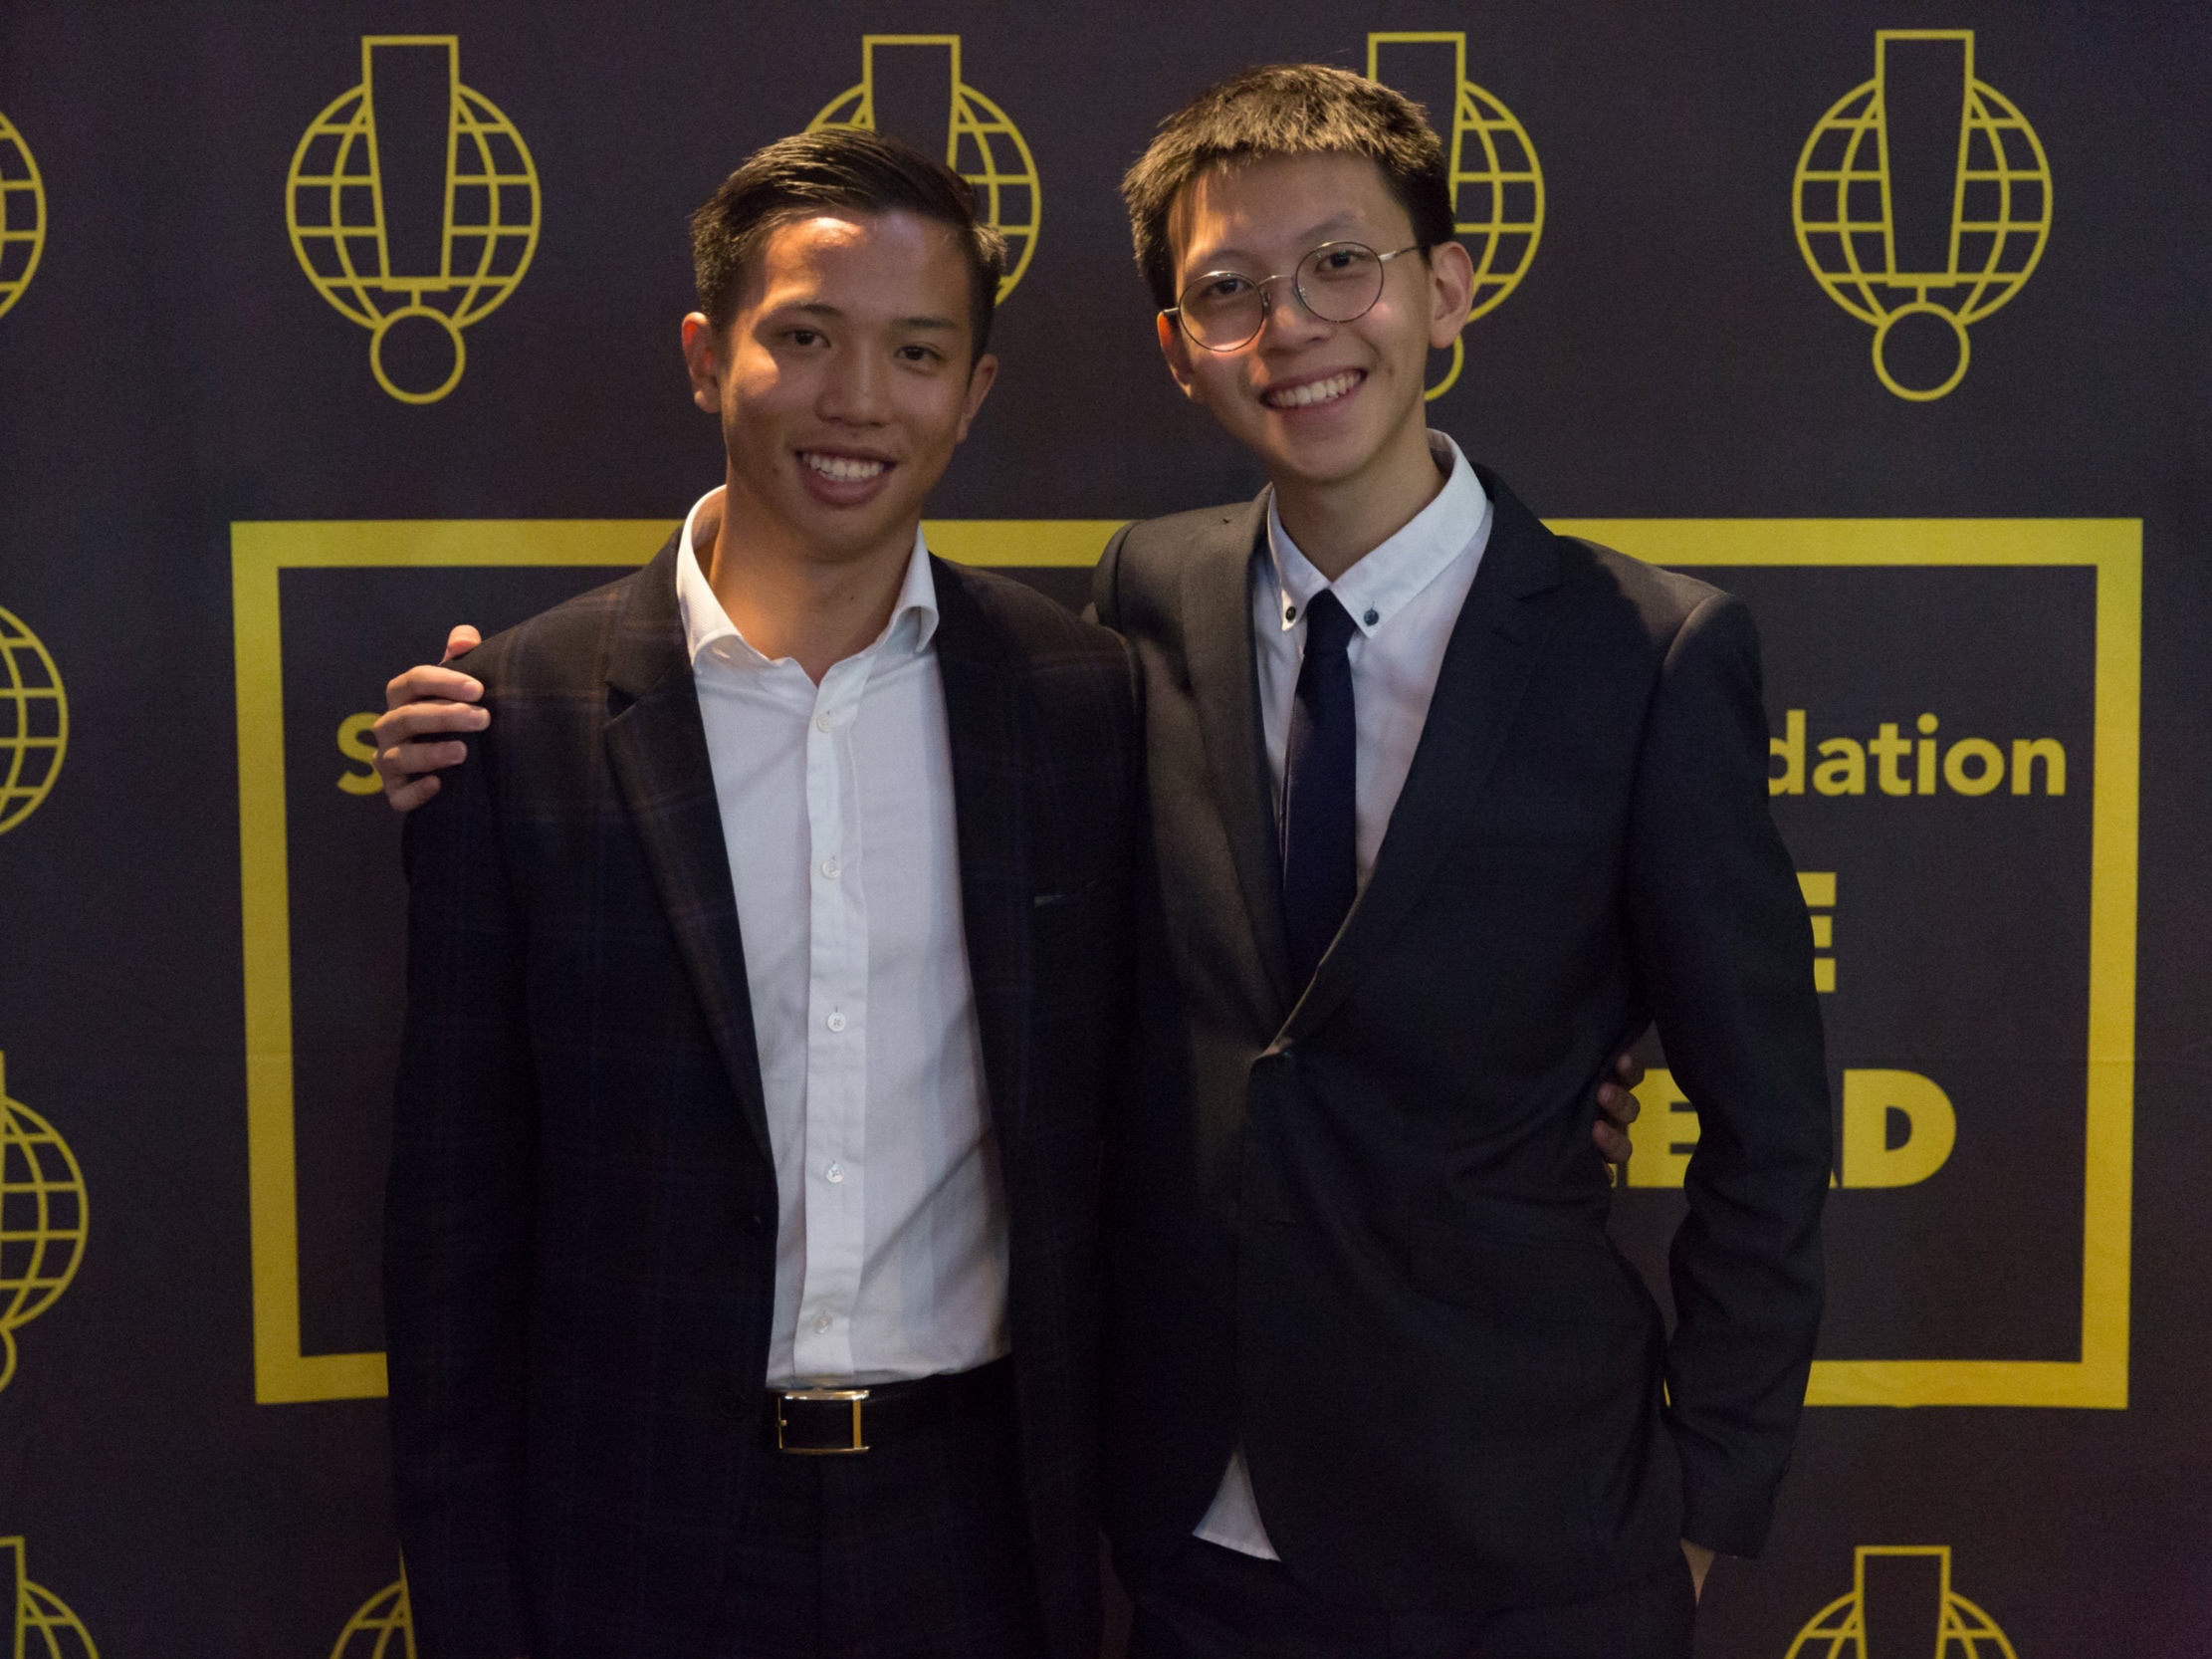 Founder and President Joseph Wan with his successor, Alex Yu